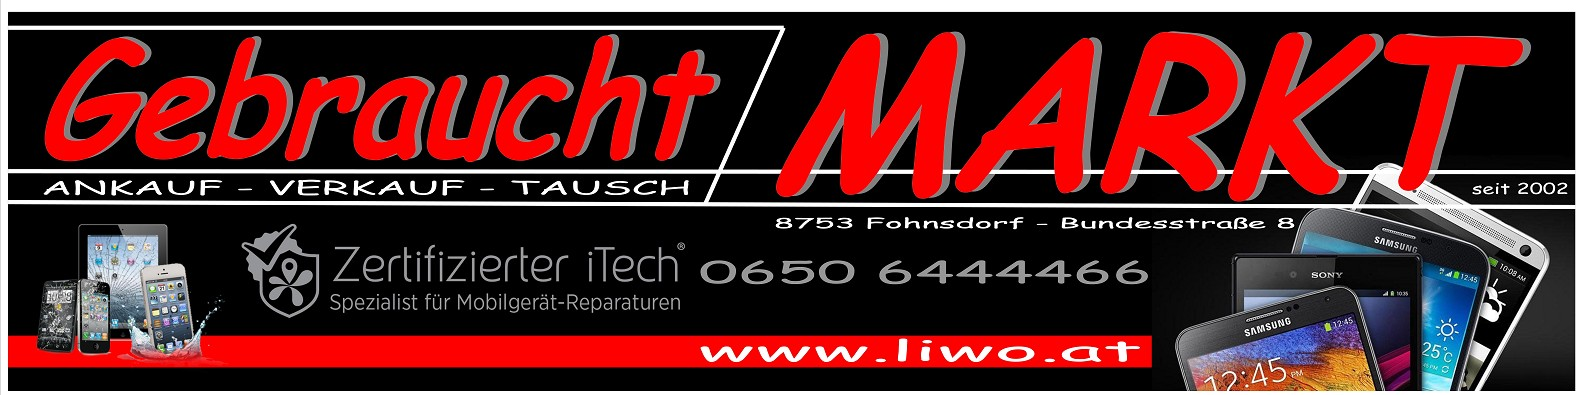 Homepage Transparent11